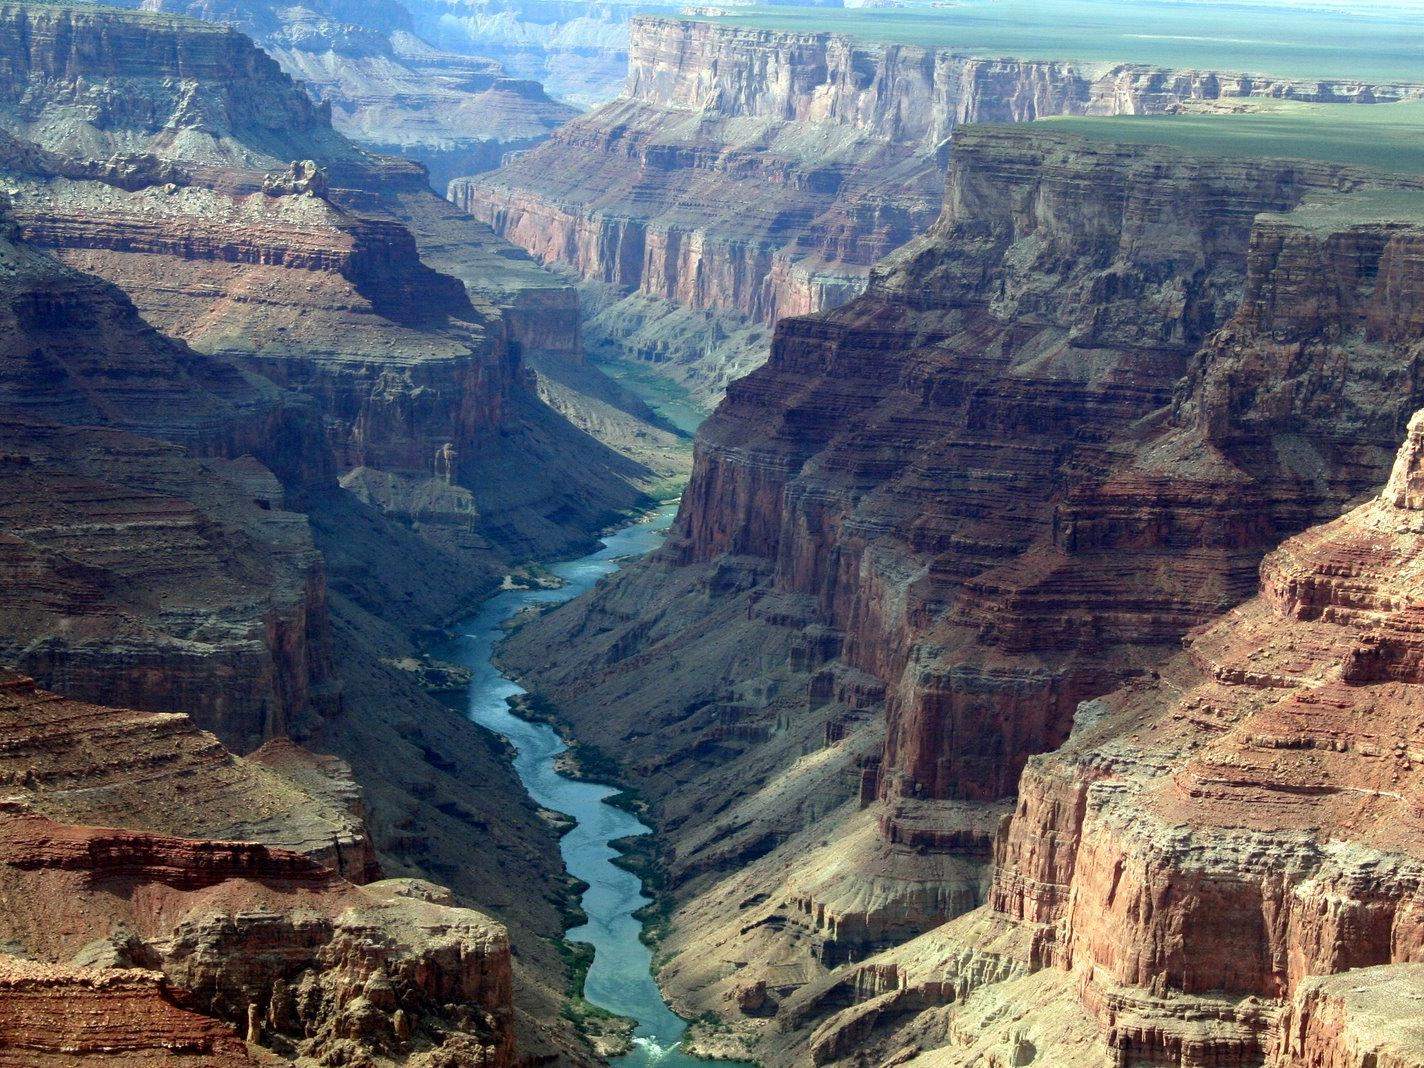 Grand Canyon Tours Amp Vacation Packages From Los Angeles